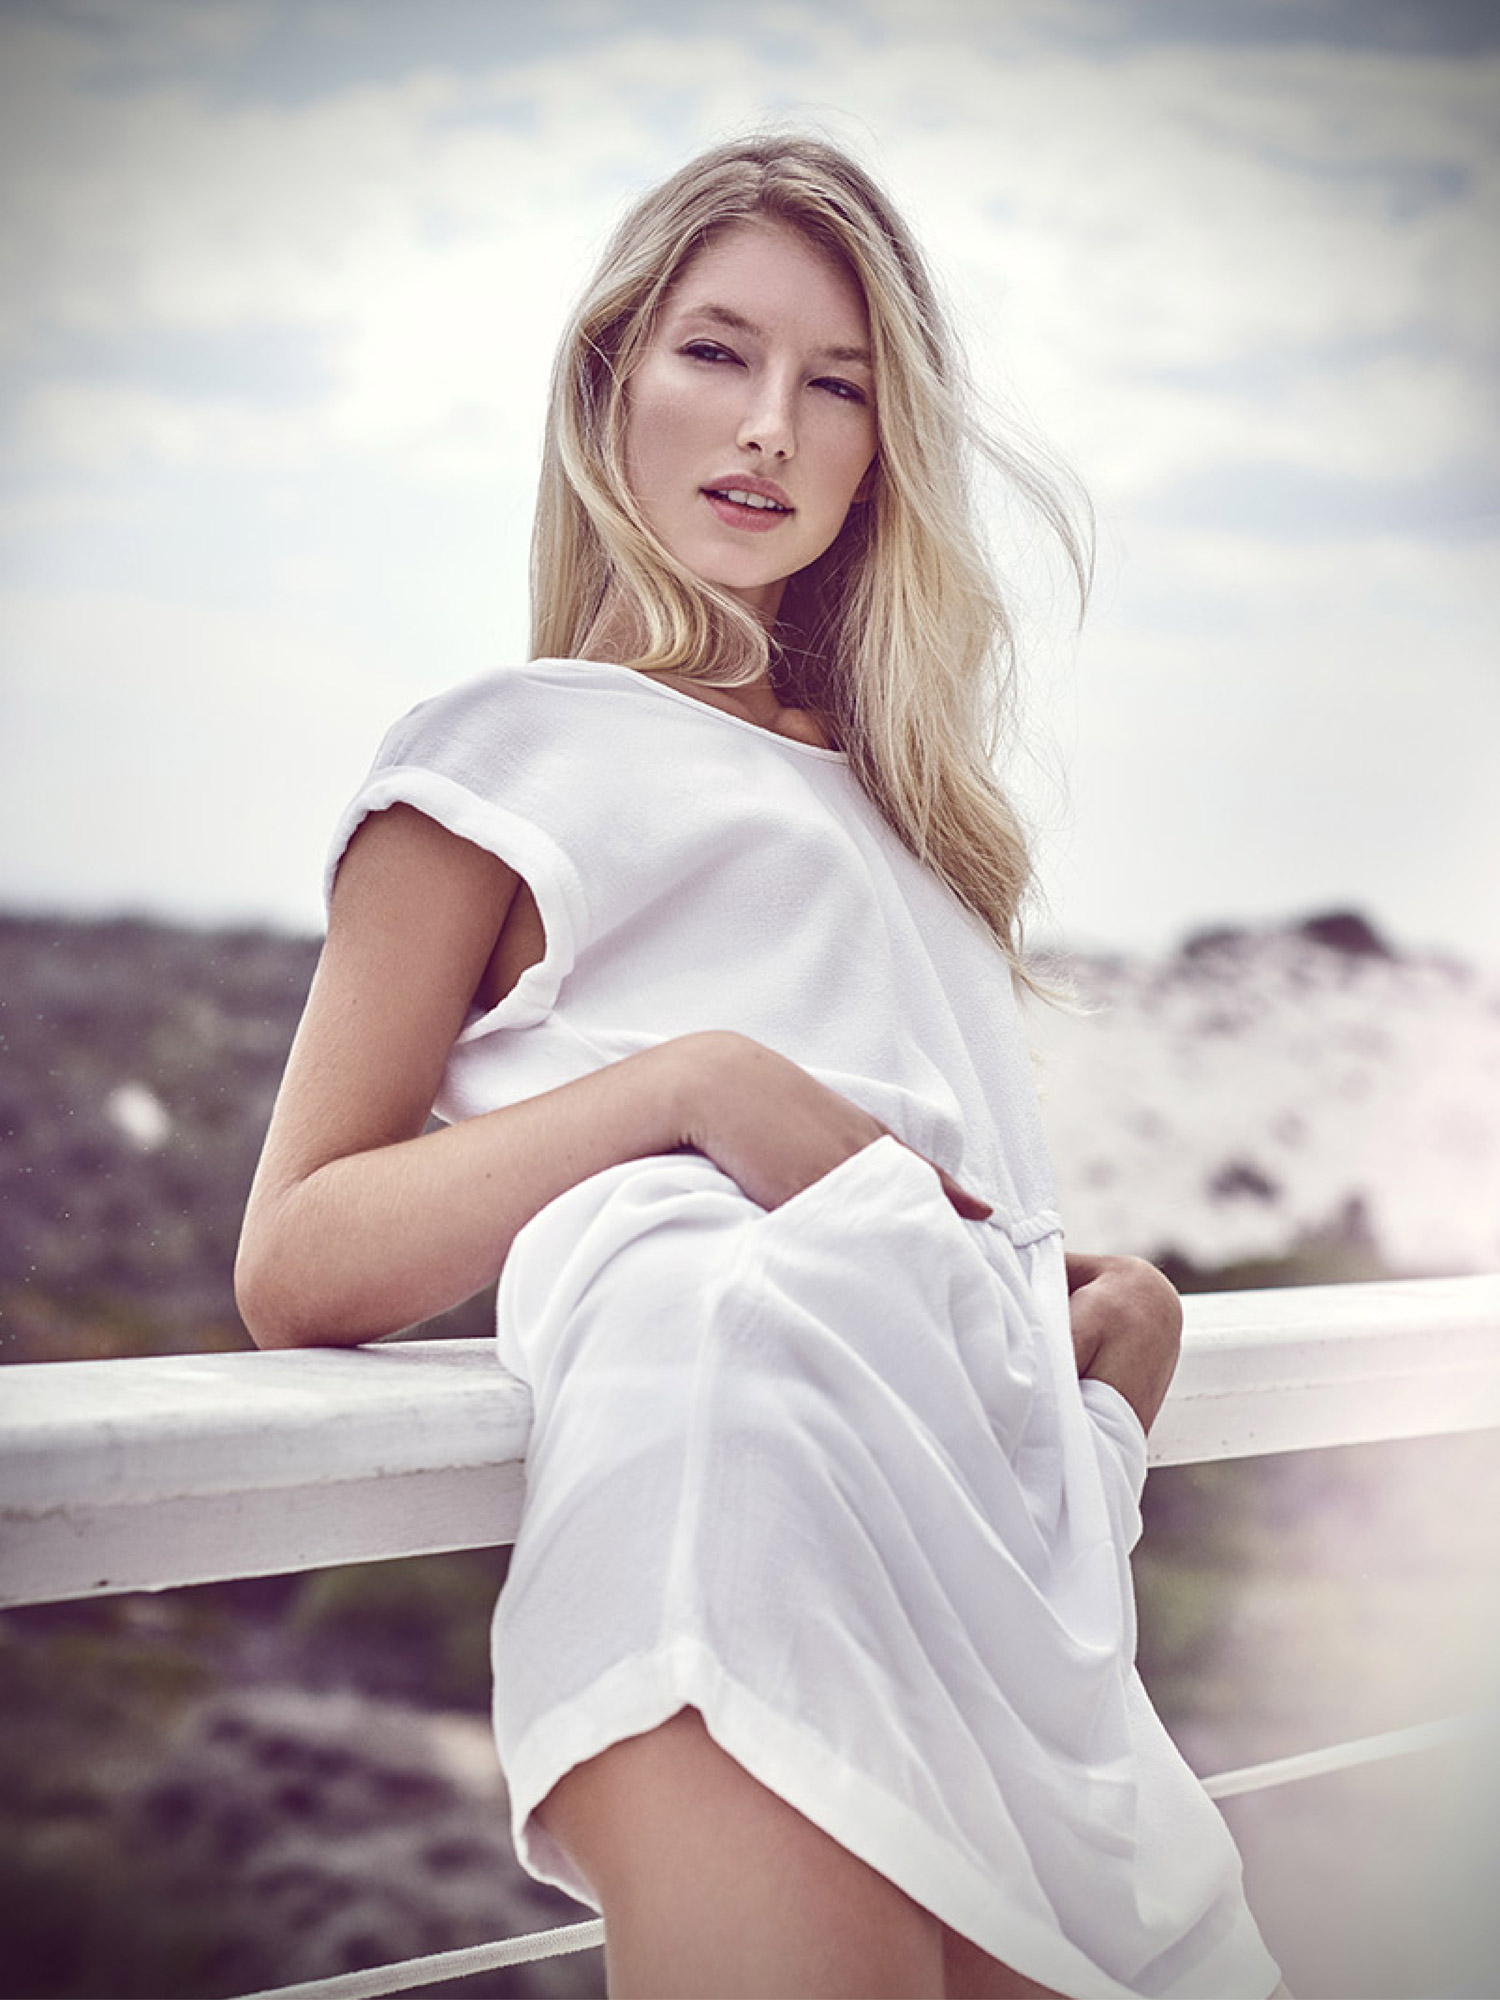 Astrid M Obert Photography presents WHITE PEARL